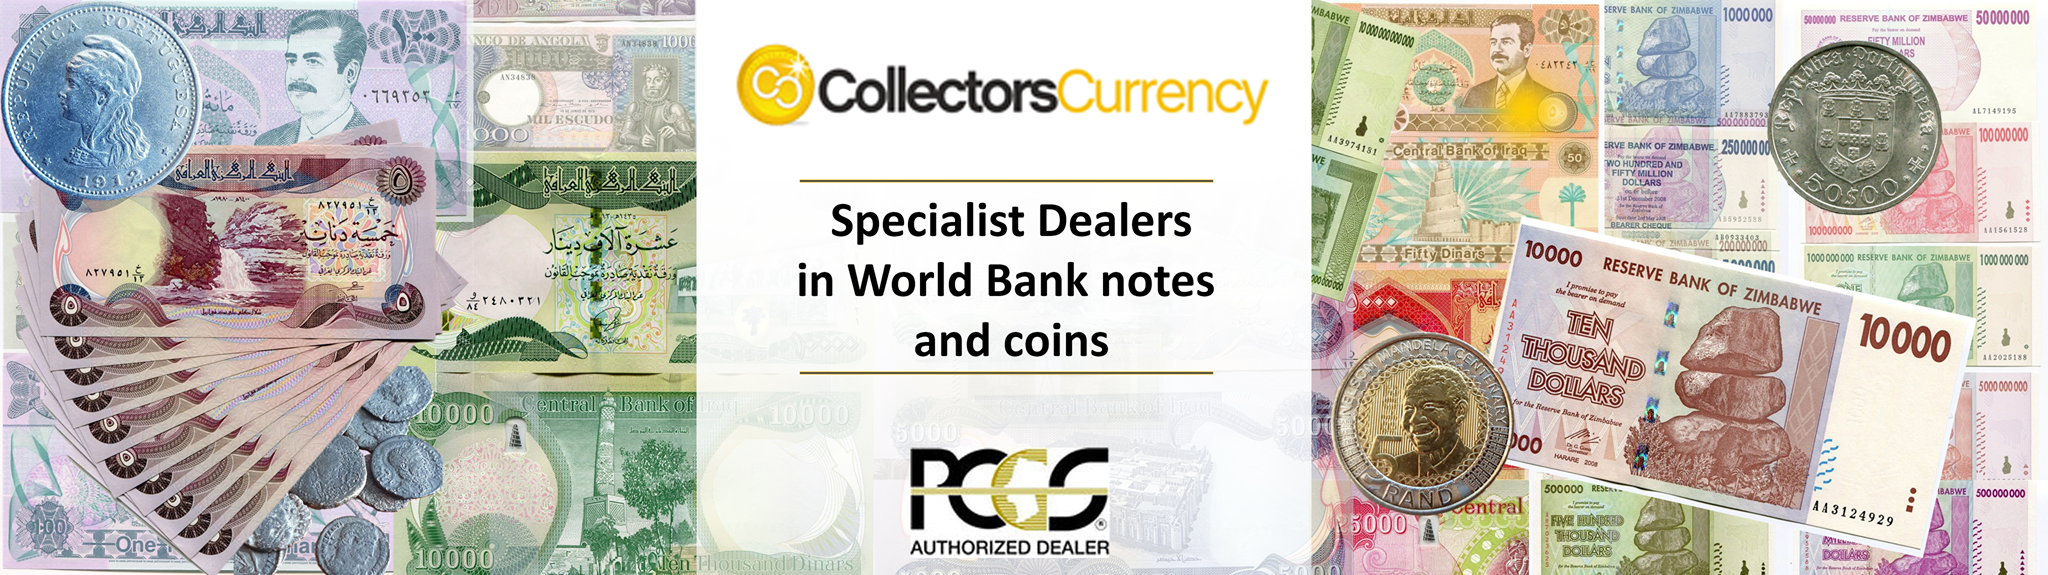 Collectors Currency